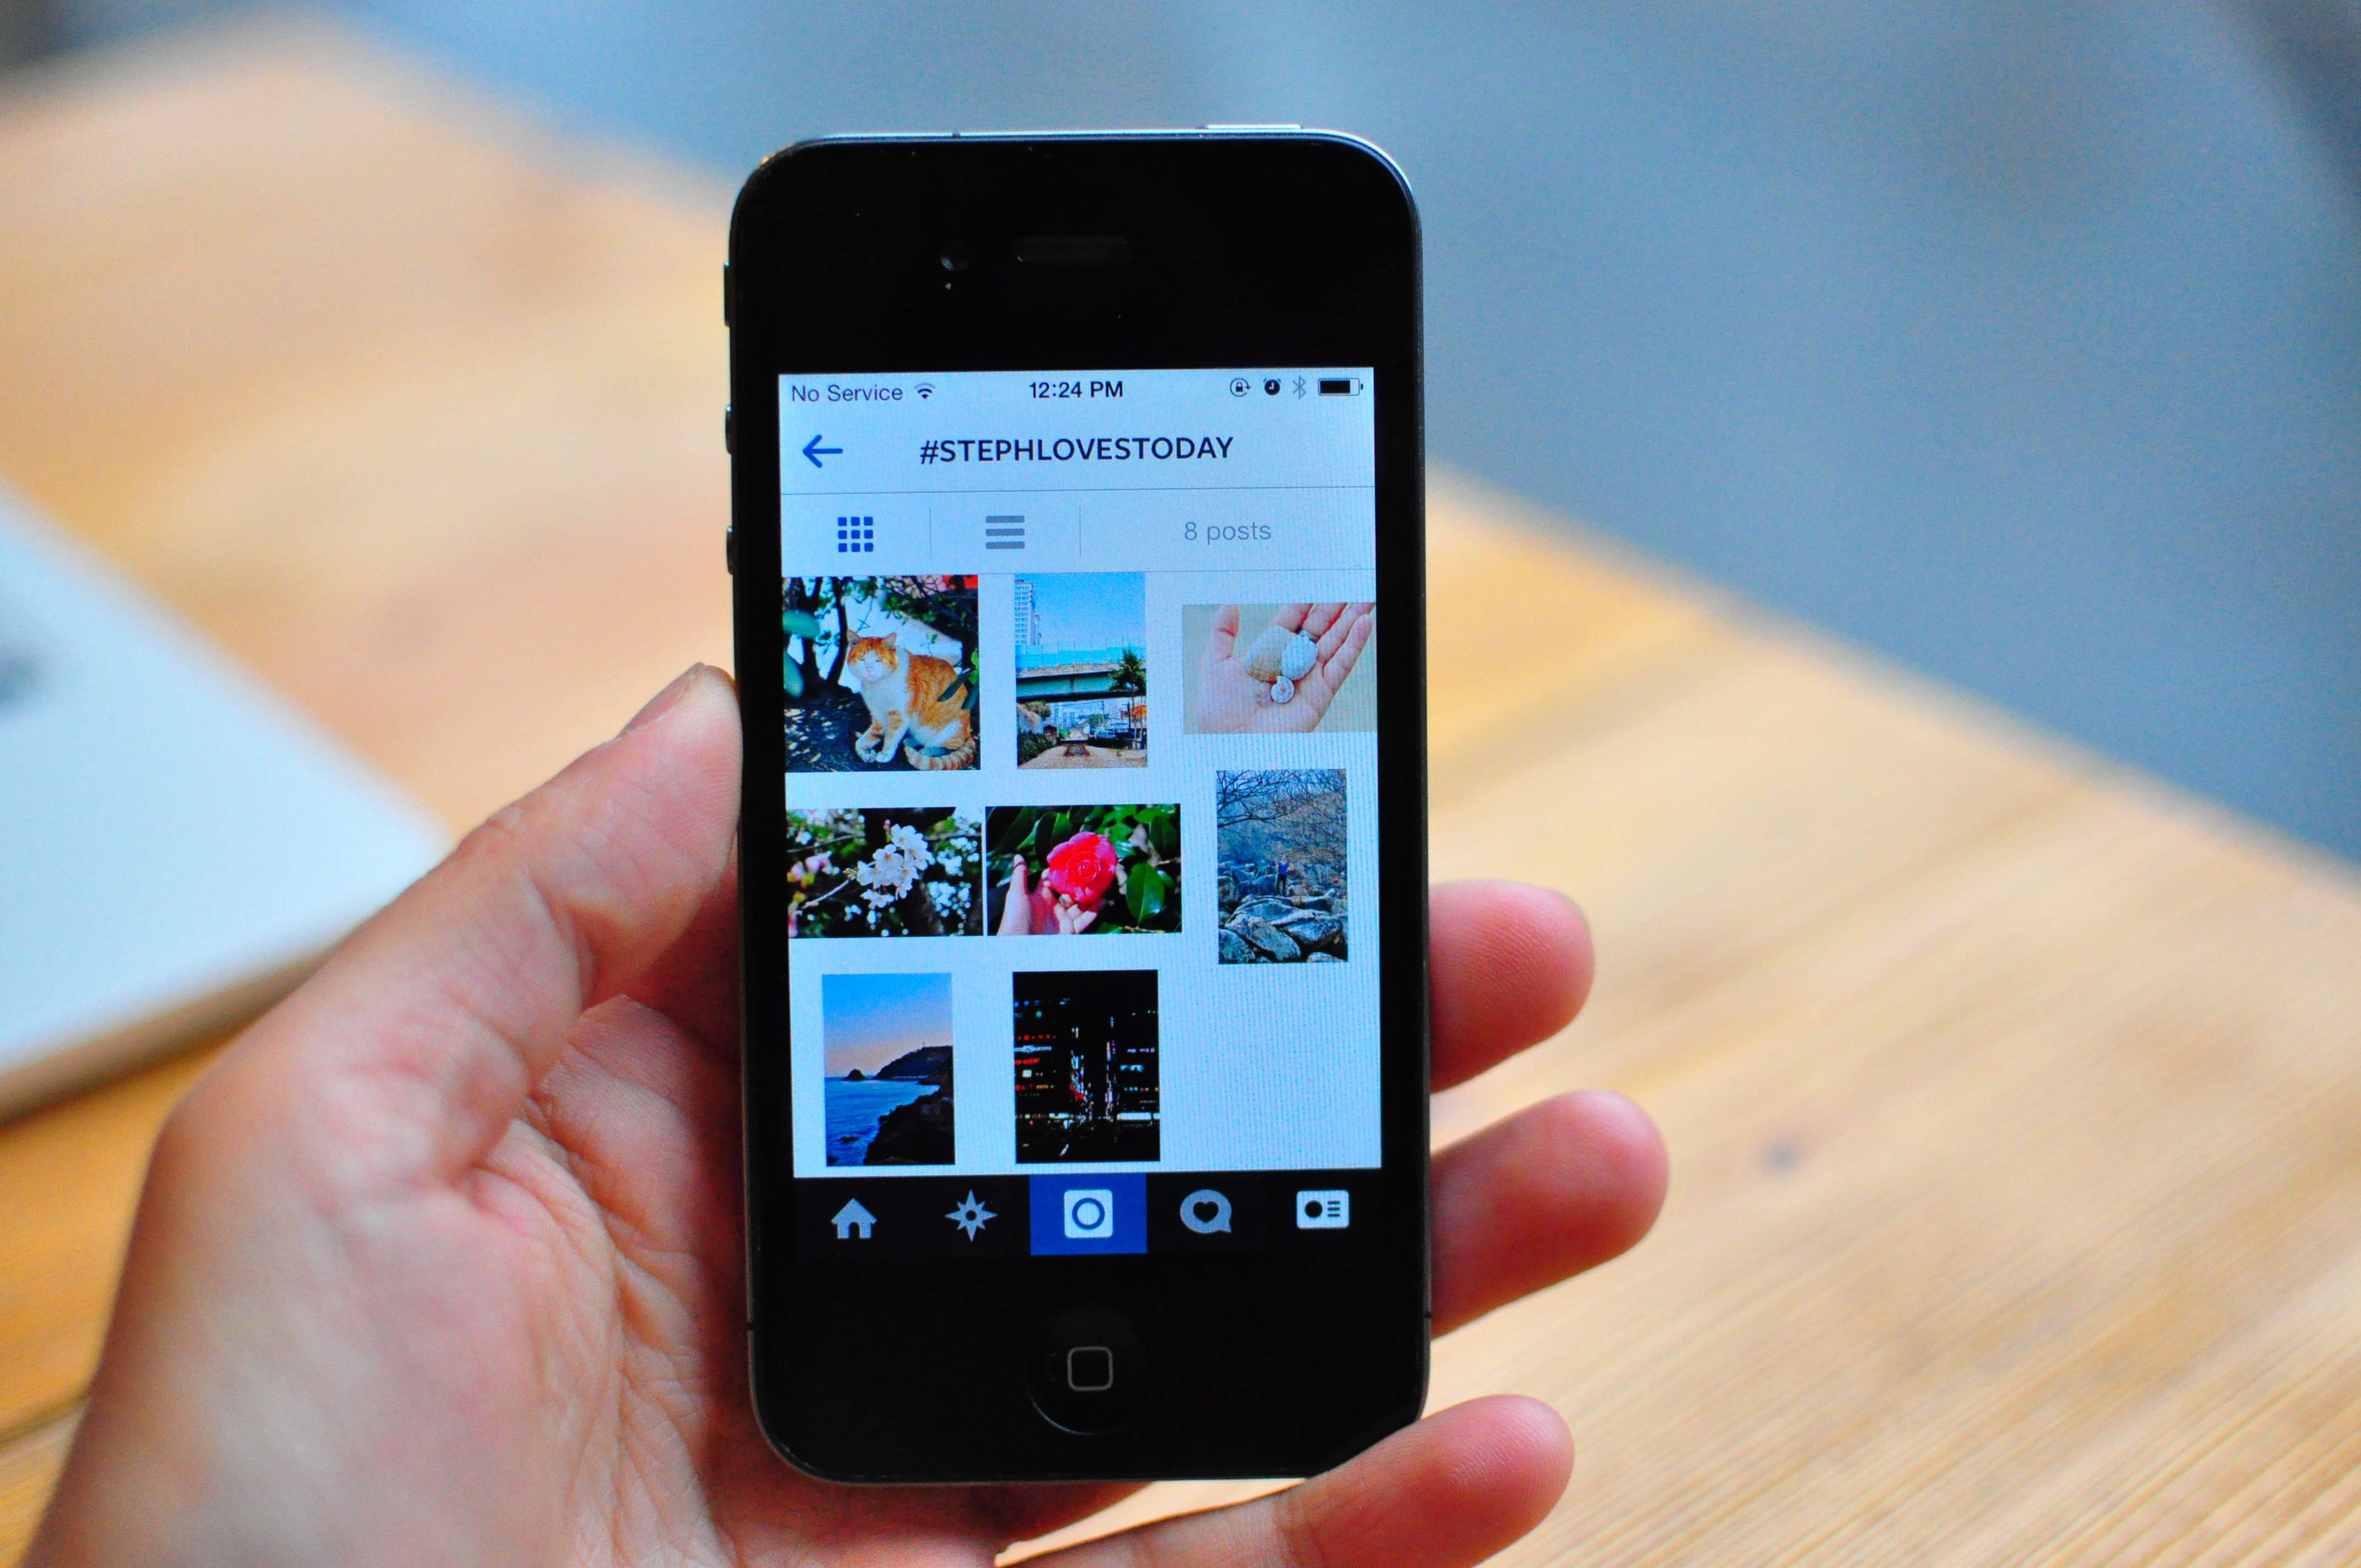 Instagram Tips: How To Fix an Instagram Hashtag When a Photo